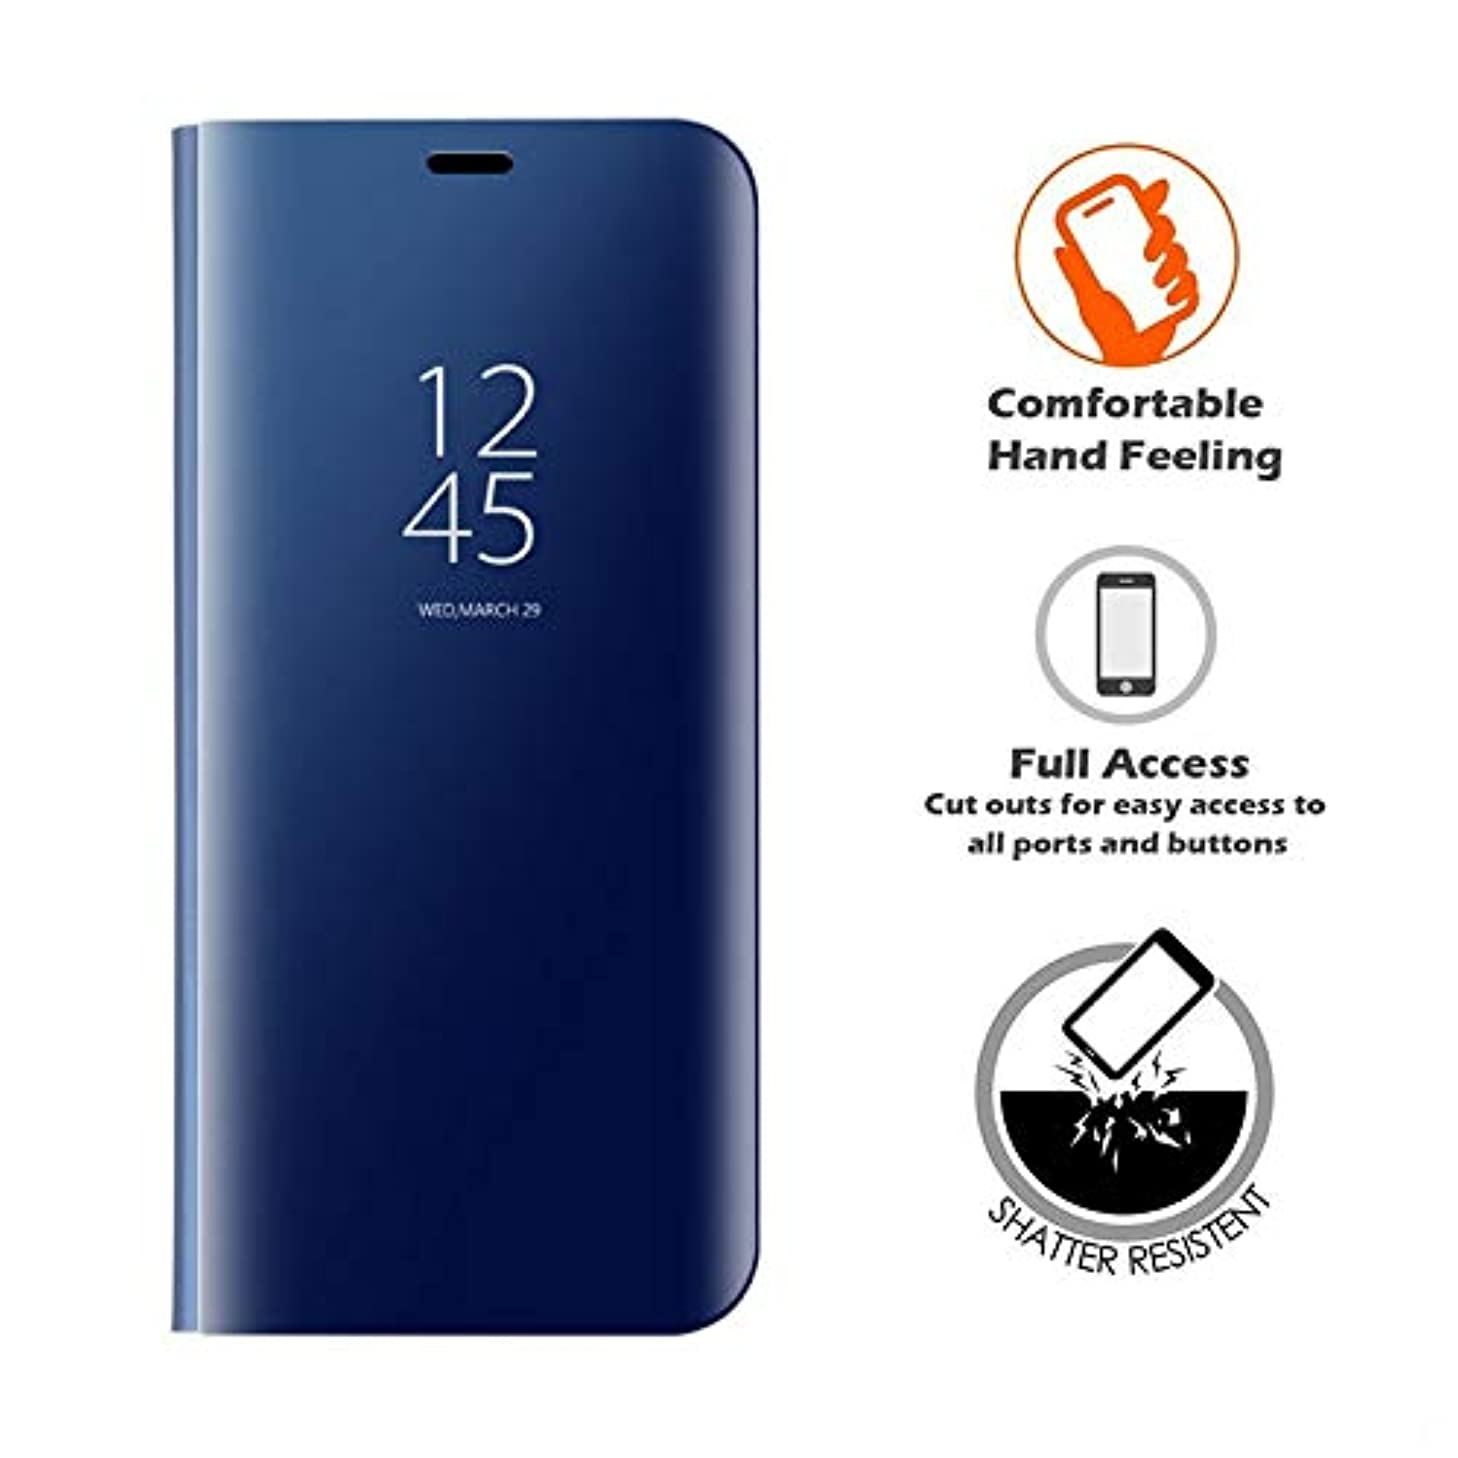 LIKESEA Xiaomi Mi 8 Lite Case, Slim Fit Electroplate Plating Smart Clear View Case Flip Stand PC Hard Cover 360 Degree Full Body Shockproof Protective Skin for Xiaomi Mi 8 Lite - Blue